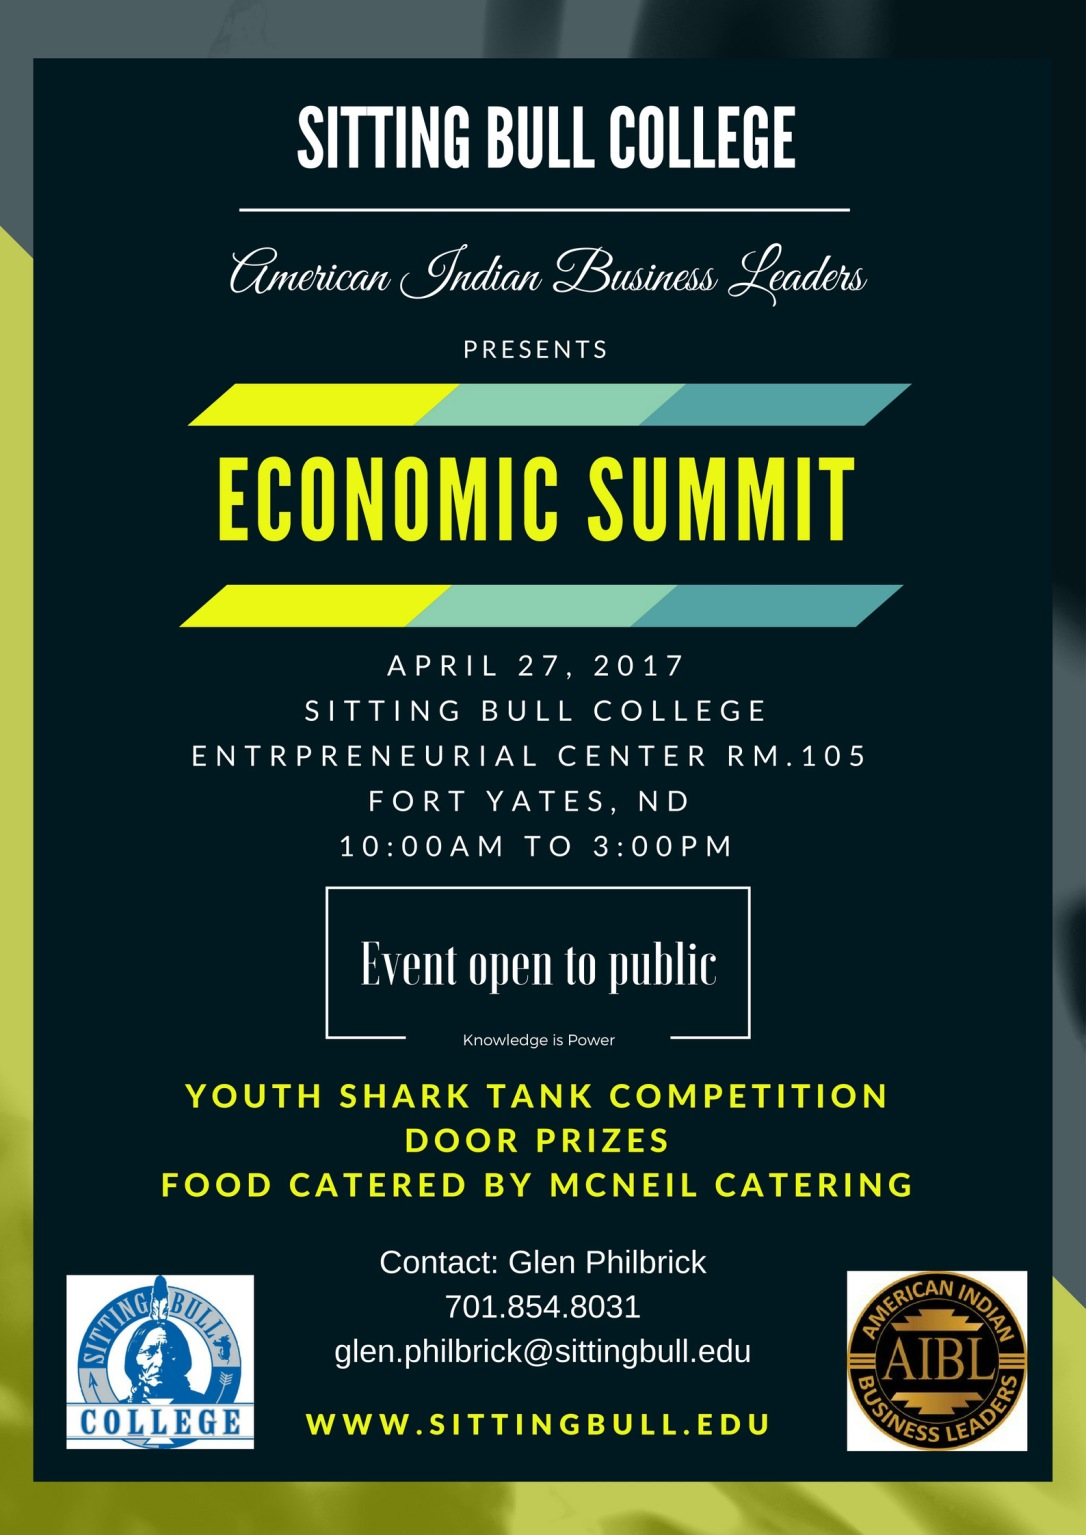 AIBL Economic Summit - April 27, 2017